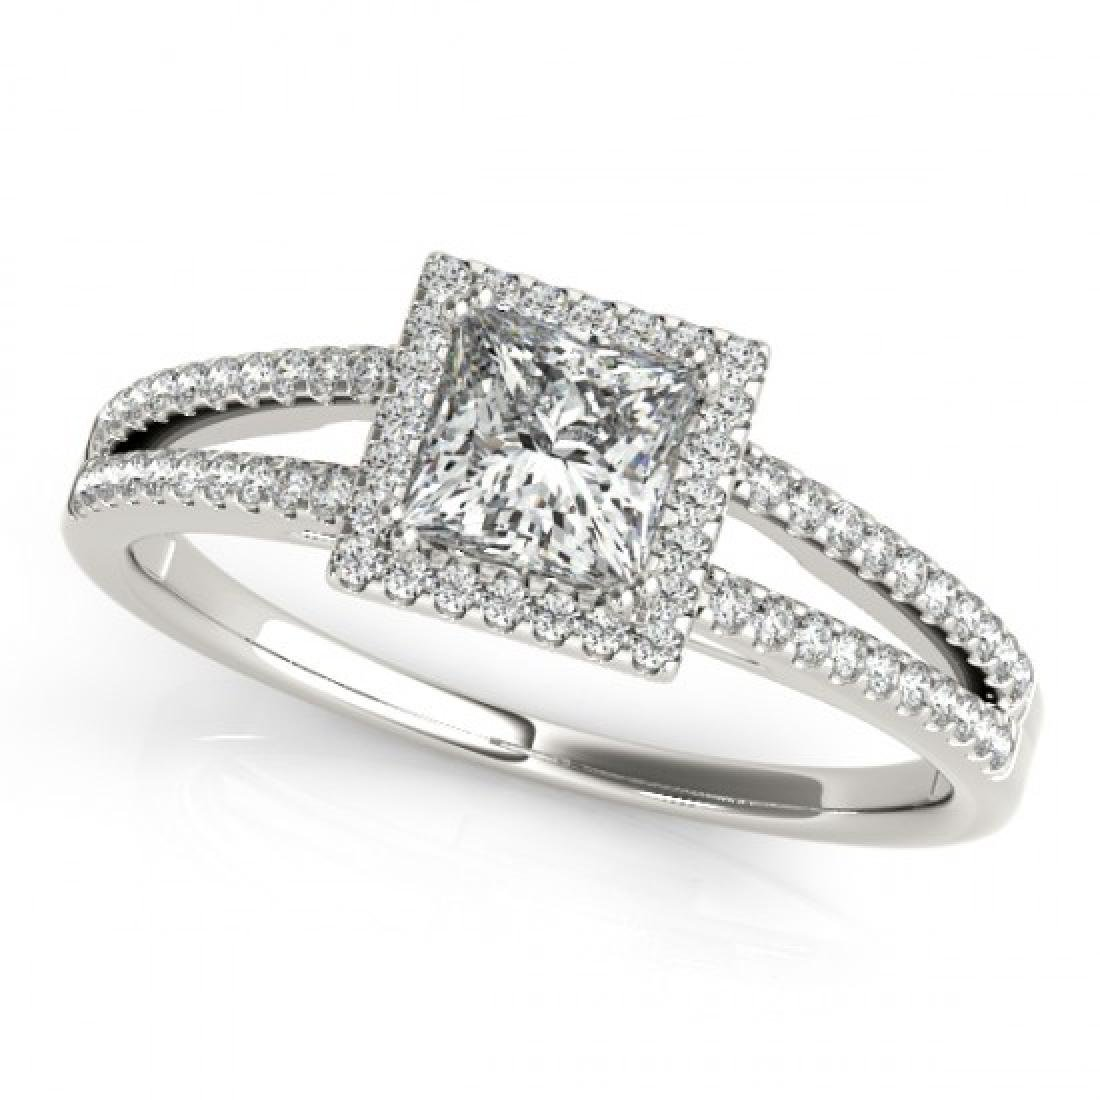 1.1 CTW Certified VS/SI Princess Diamond Solitaire Halo